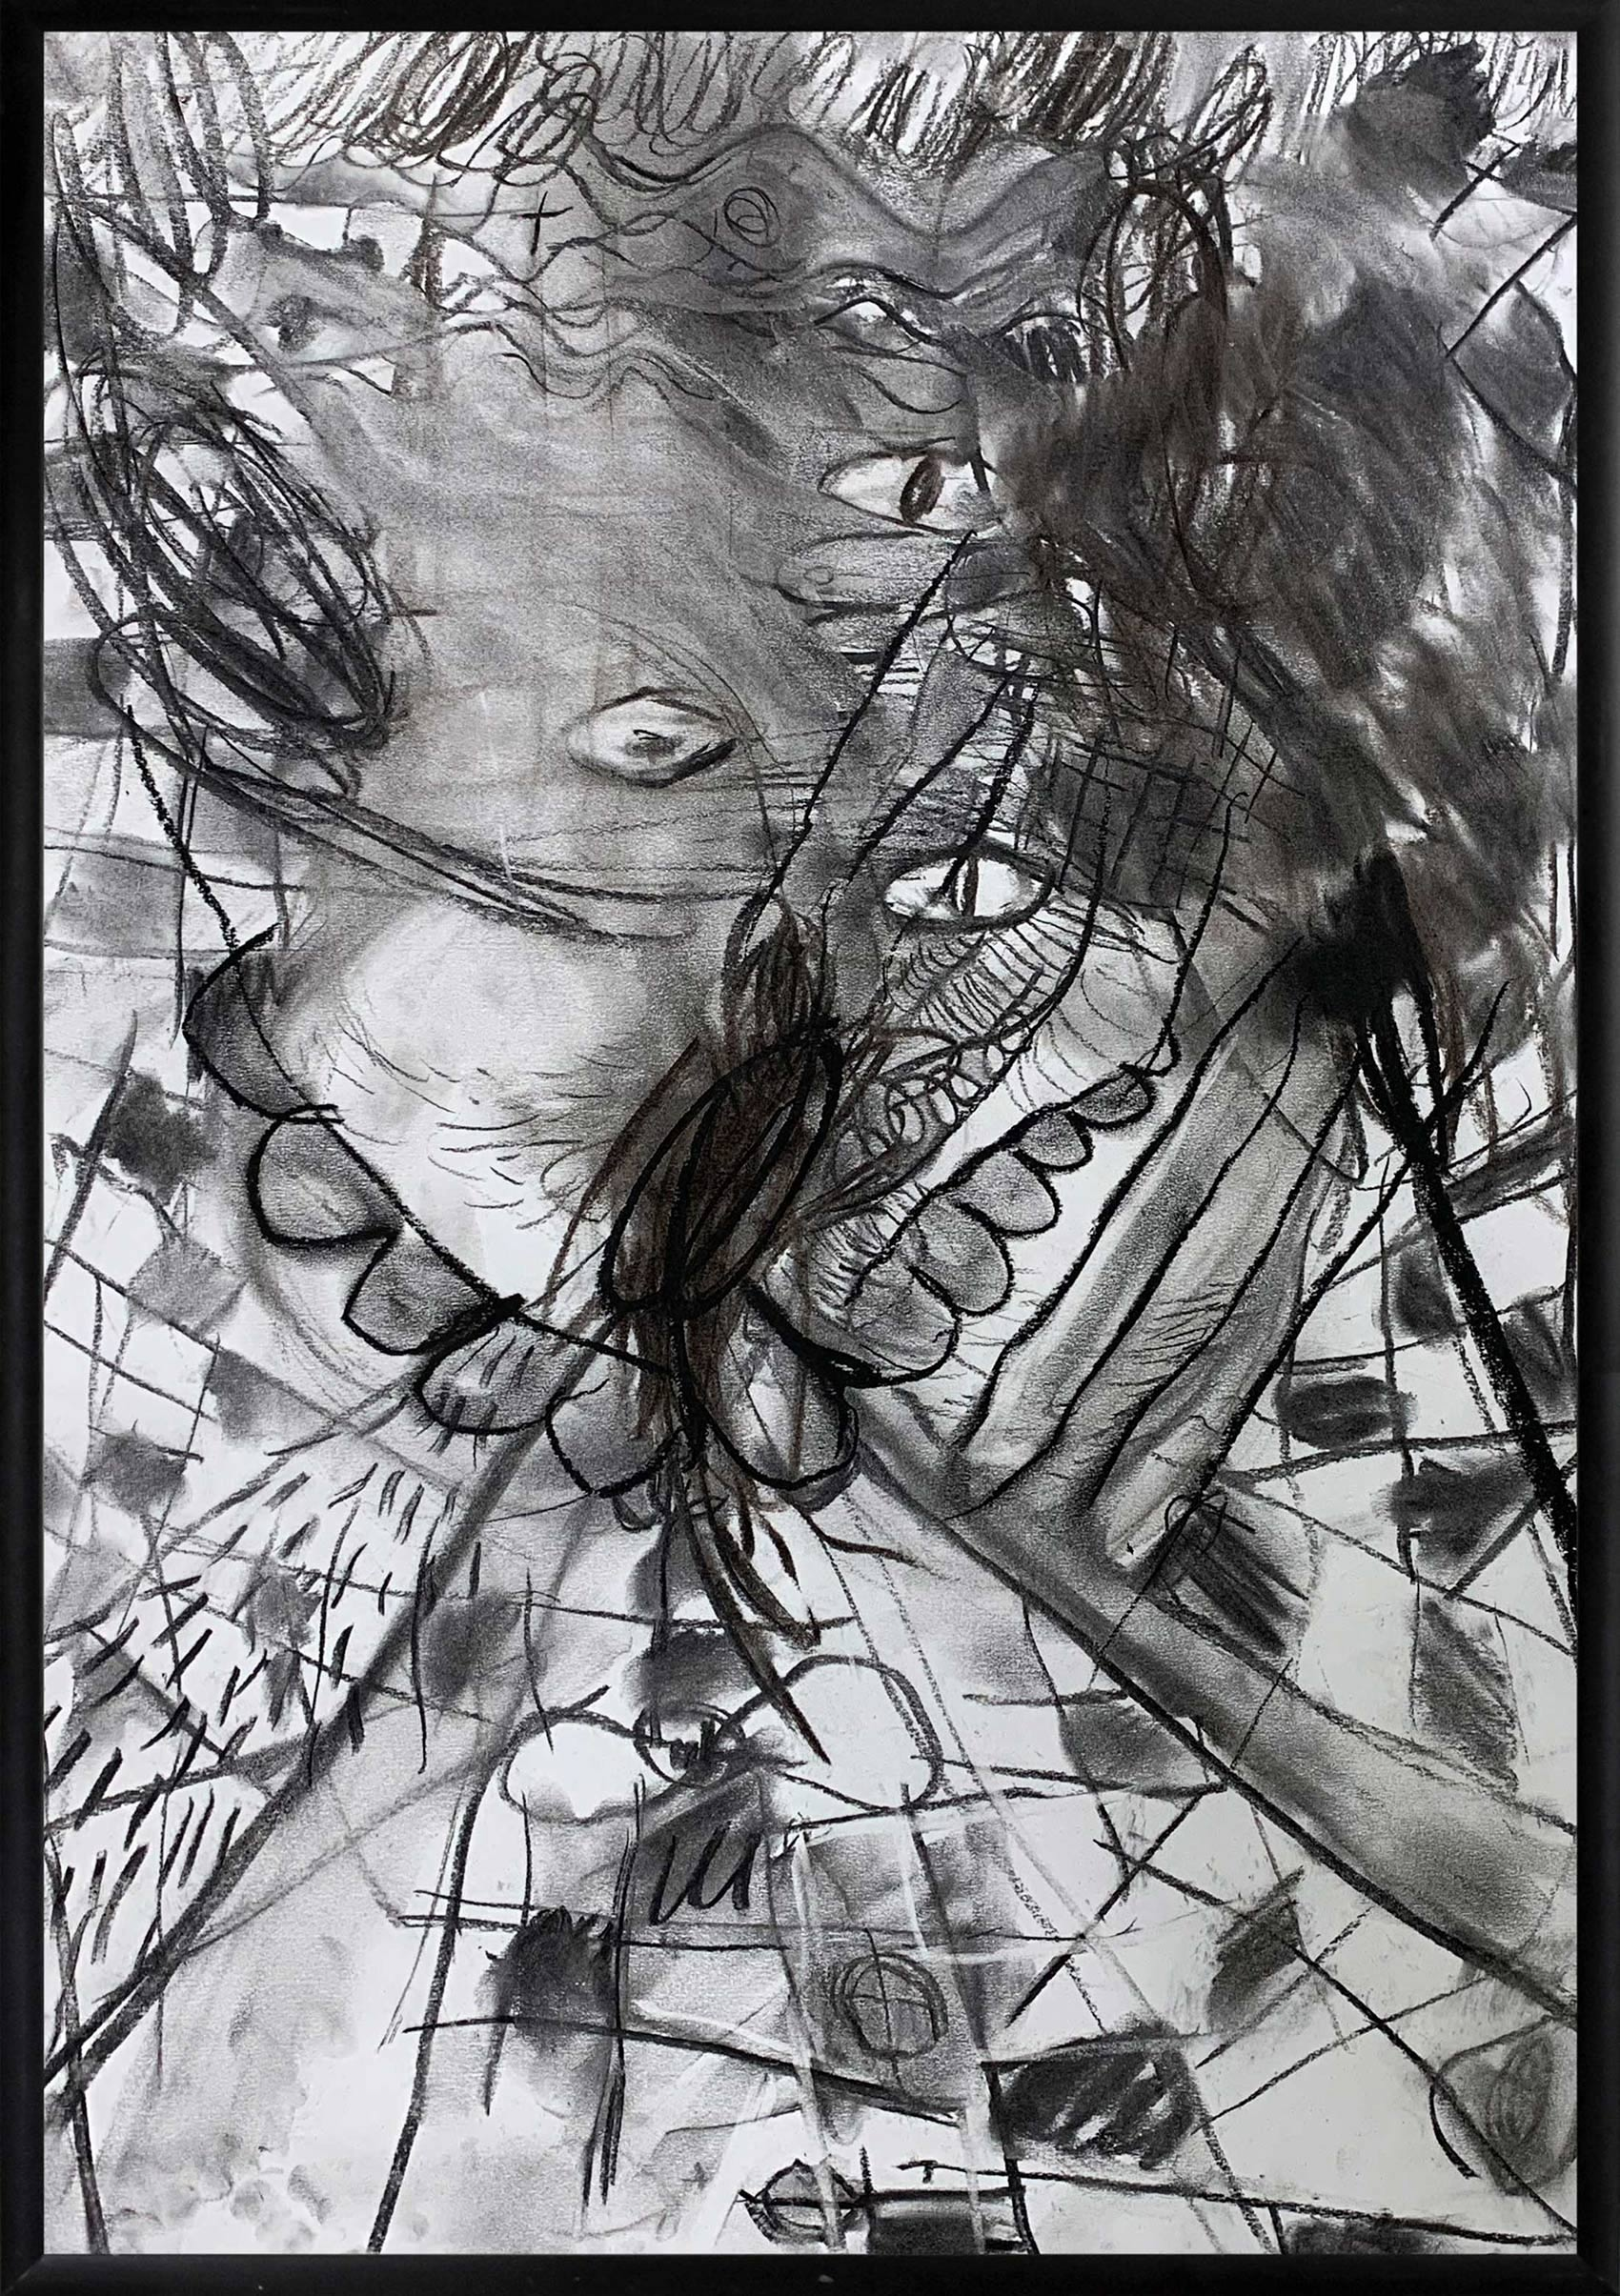 marina stankovic, drawing, work on paper, available, head space, collection, artdealer, charcoal on paper